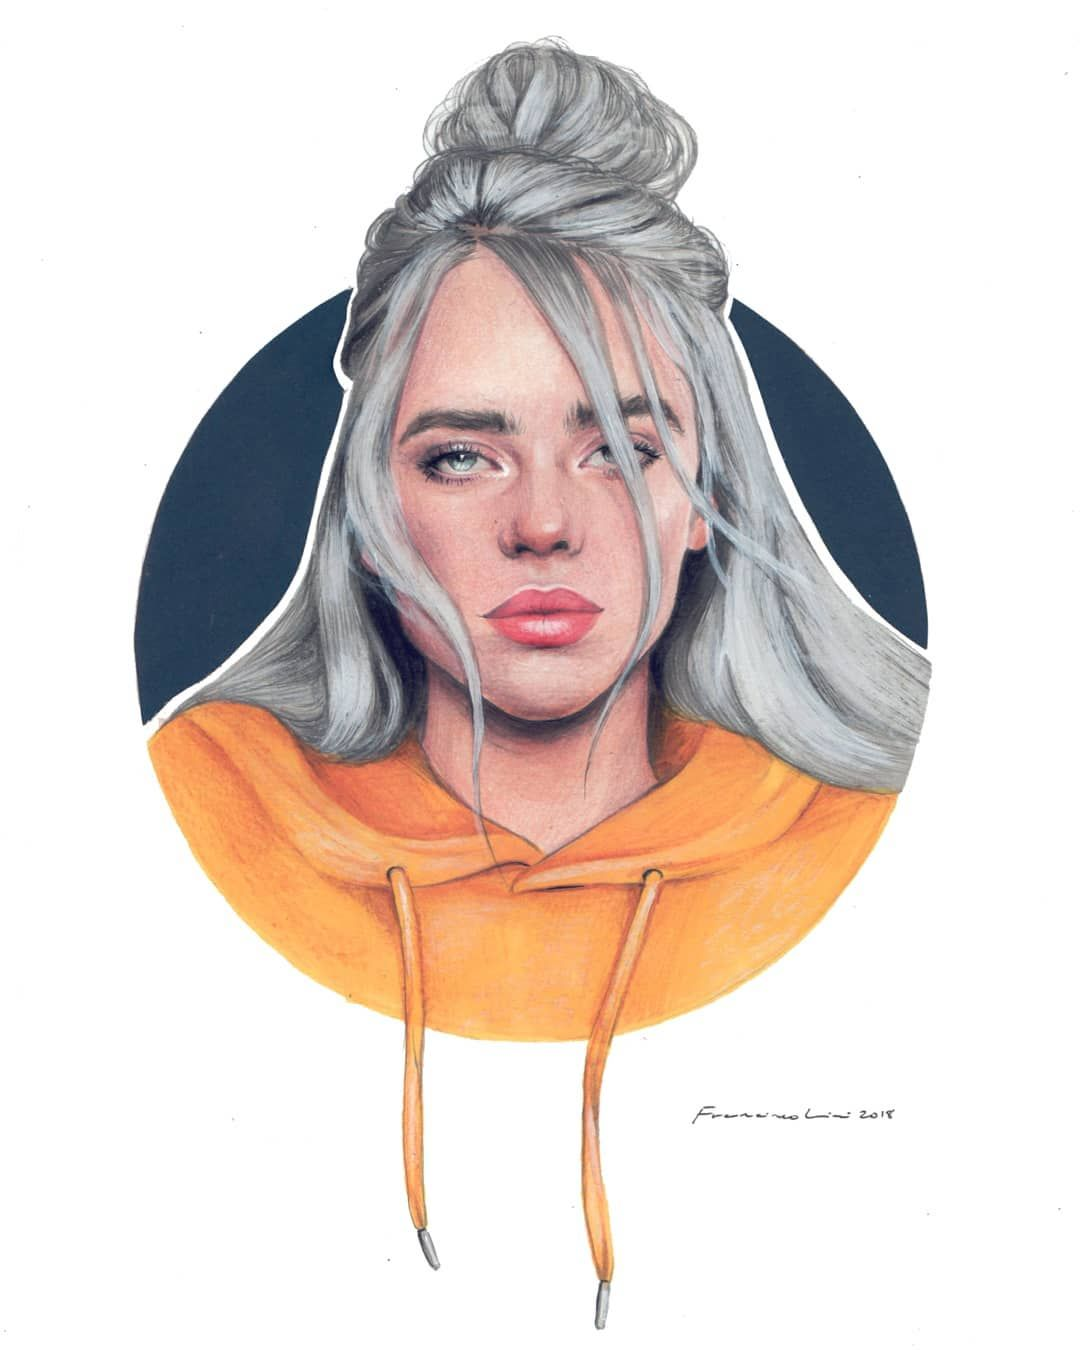 Billie Eilish Francisco Licari Fran Licari On Instagram I Ve Been Watching You For Some Time Can T Stop Staring A Billie Eilish Billie Celebrity Drawings